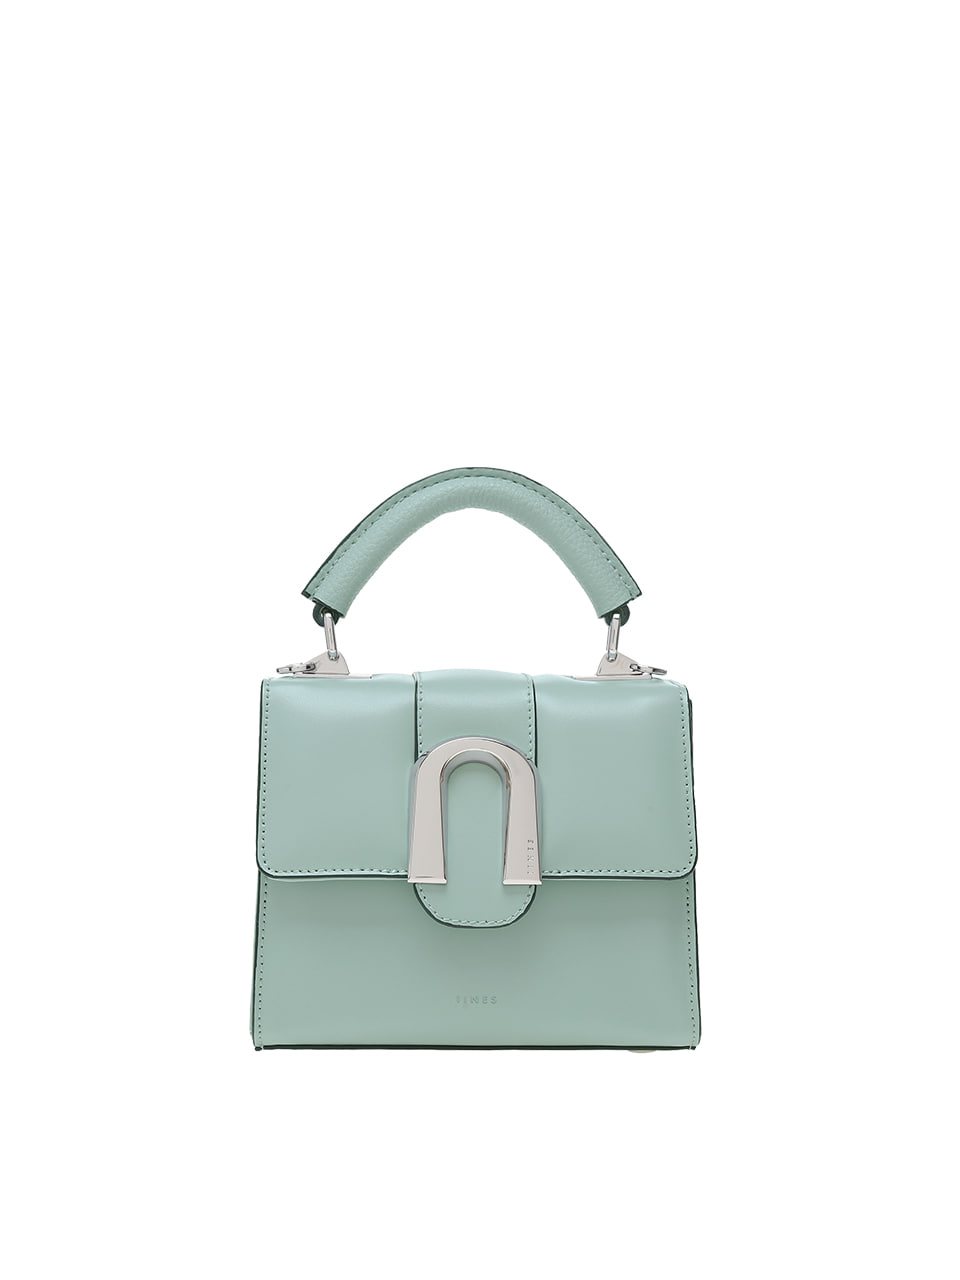 Wonderful Tote S(원더풀)_Mint_IH1ATTWD125